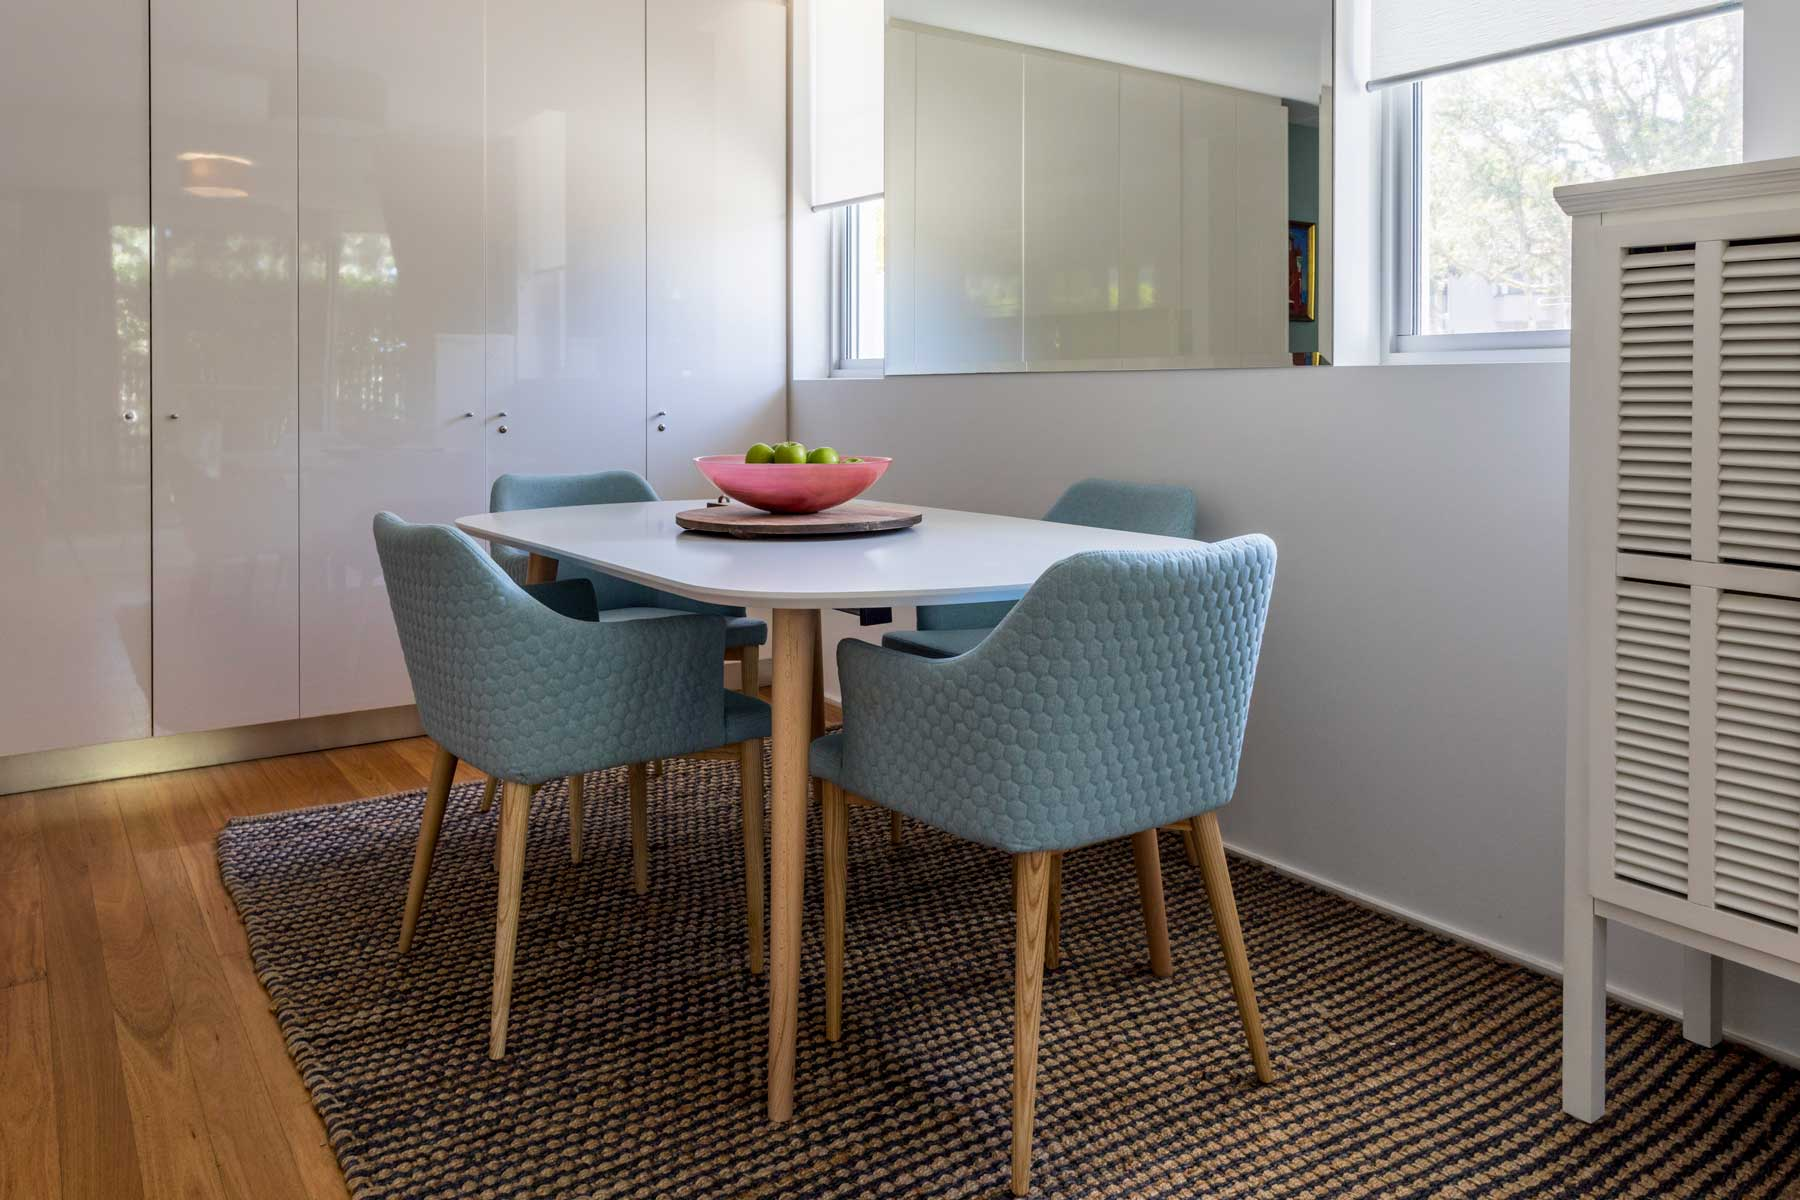 Robyn's vibrant beach apartment - after - dining table 3